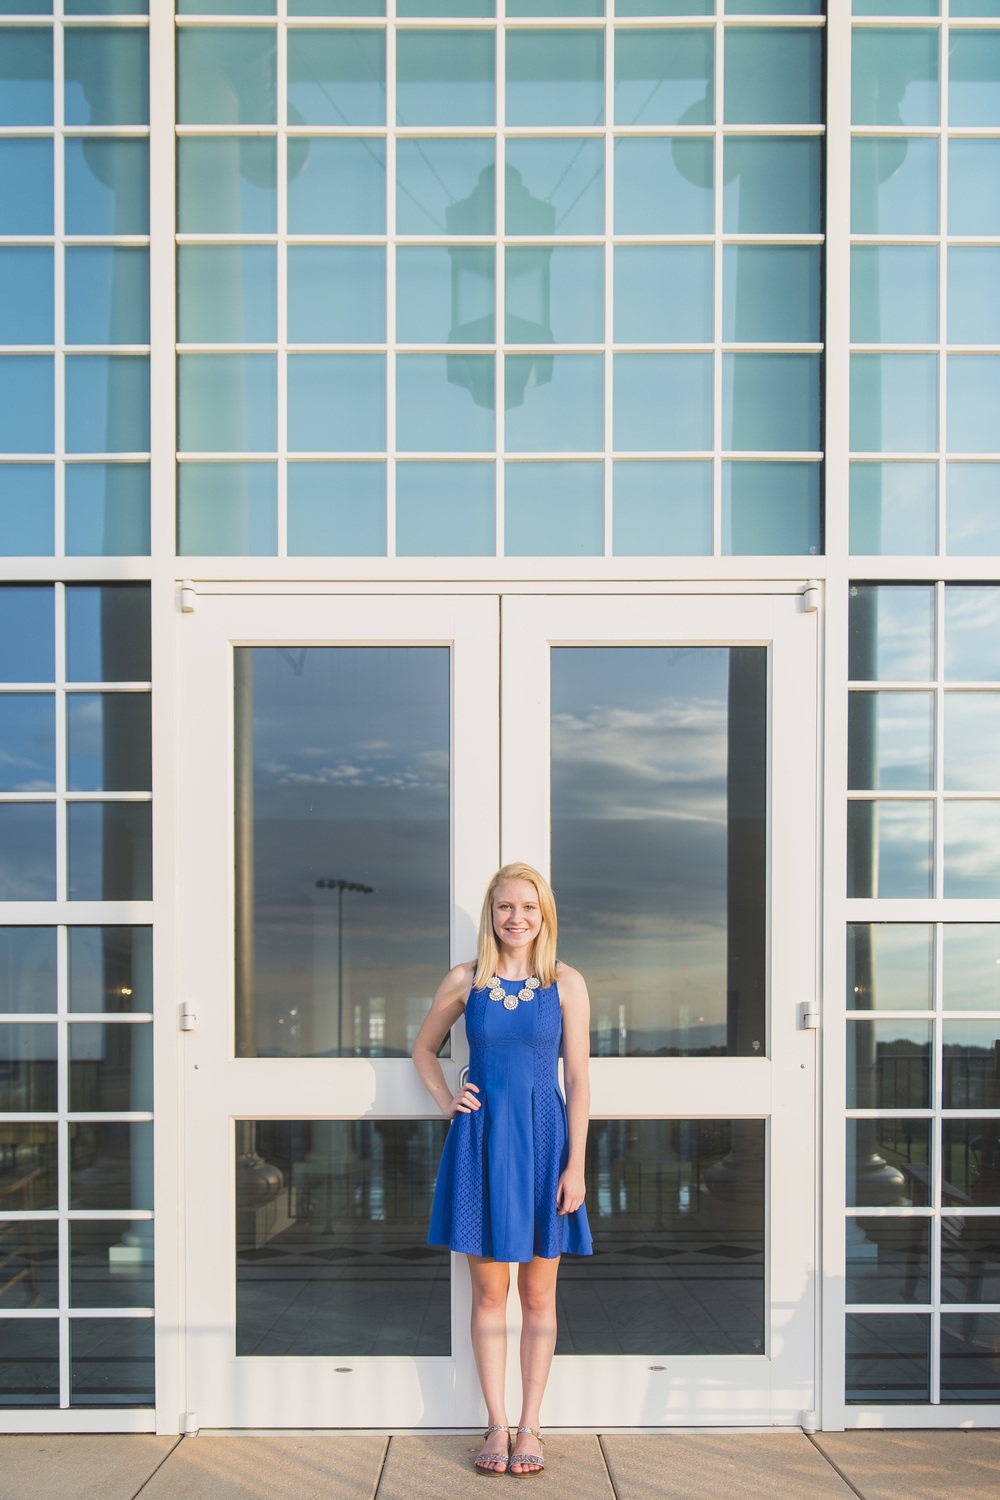 Senior_Session_Class_2016_cheerleading_VA_photos20150831_0569.jpg